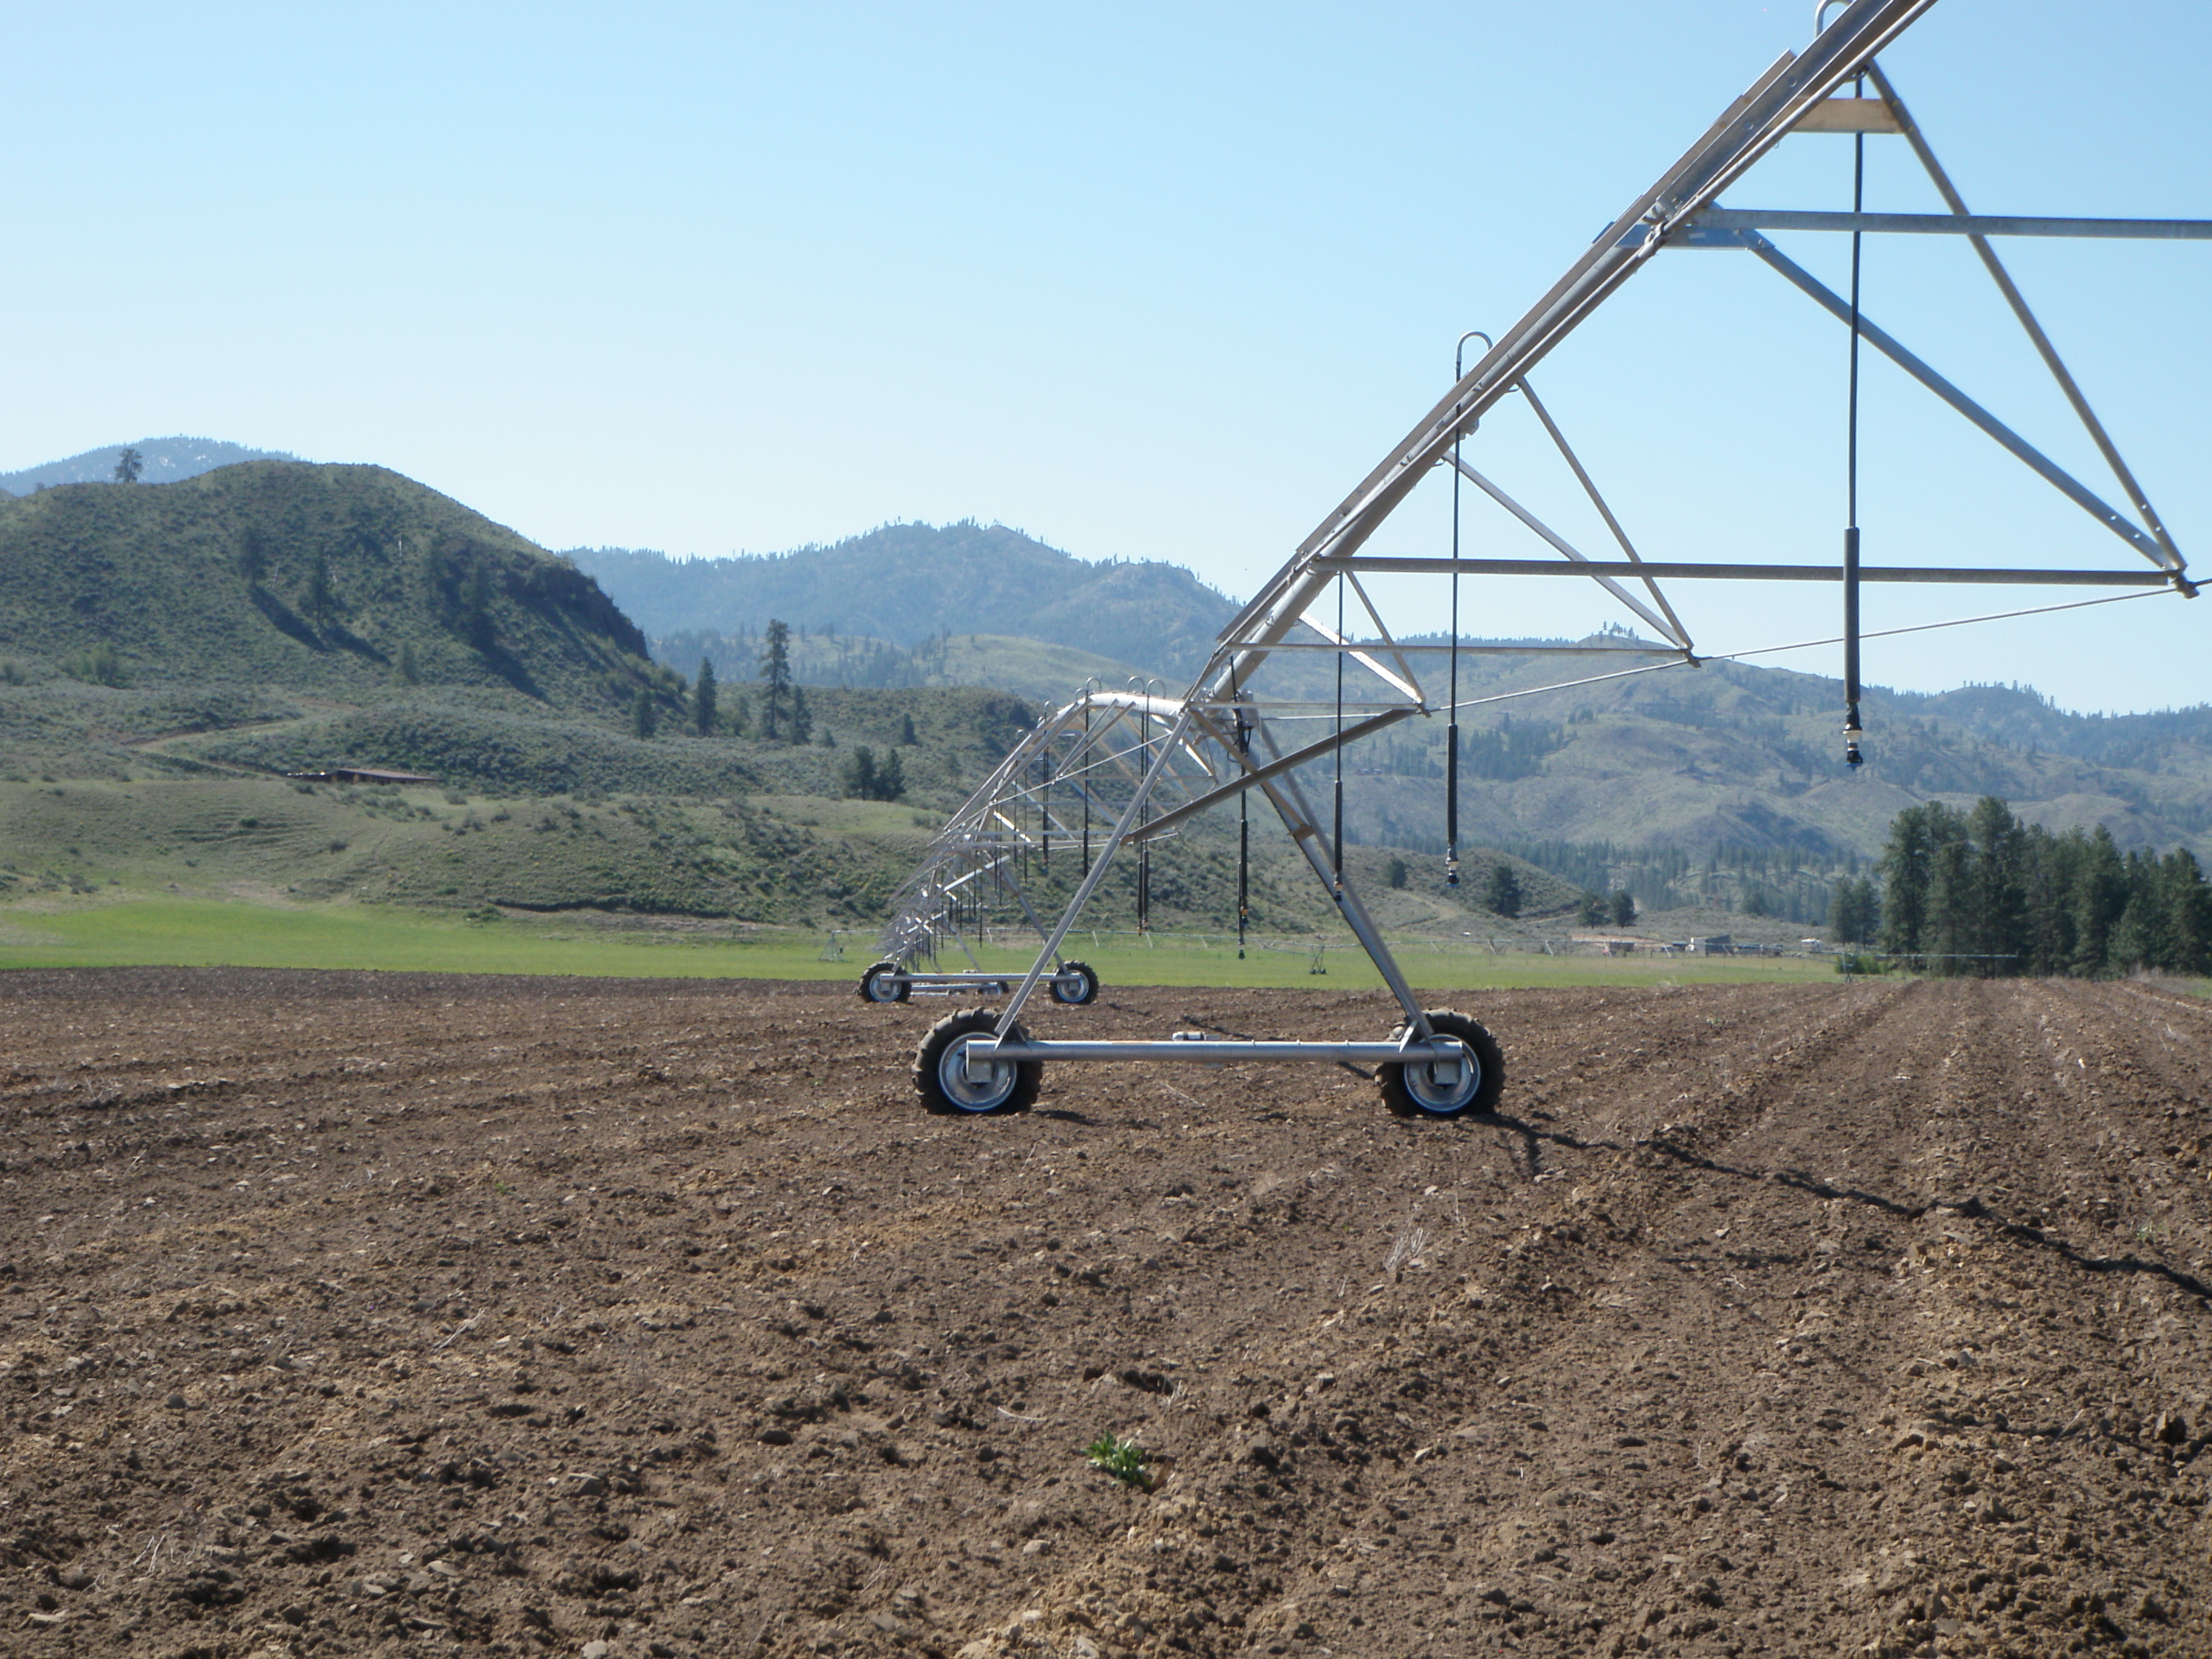 Pivots funded by EQIP in the Methow Valley